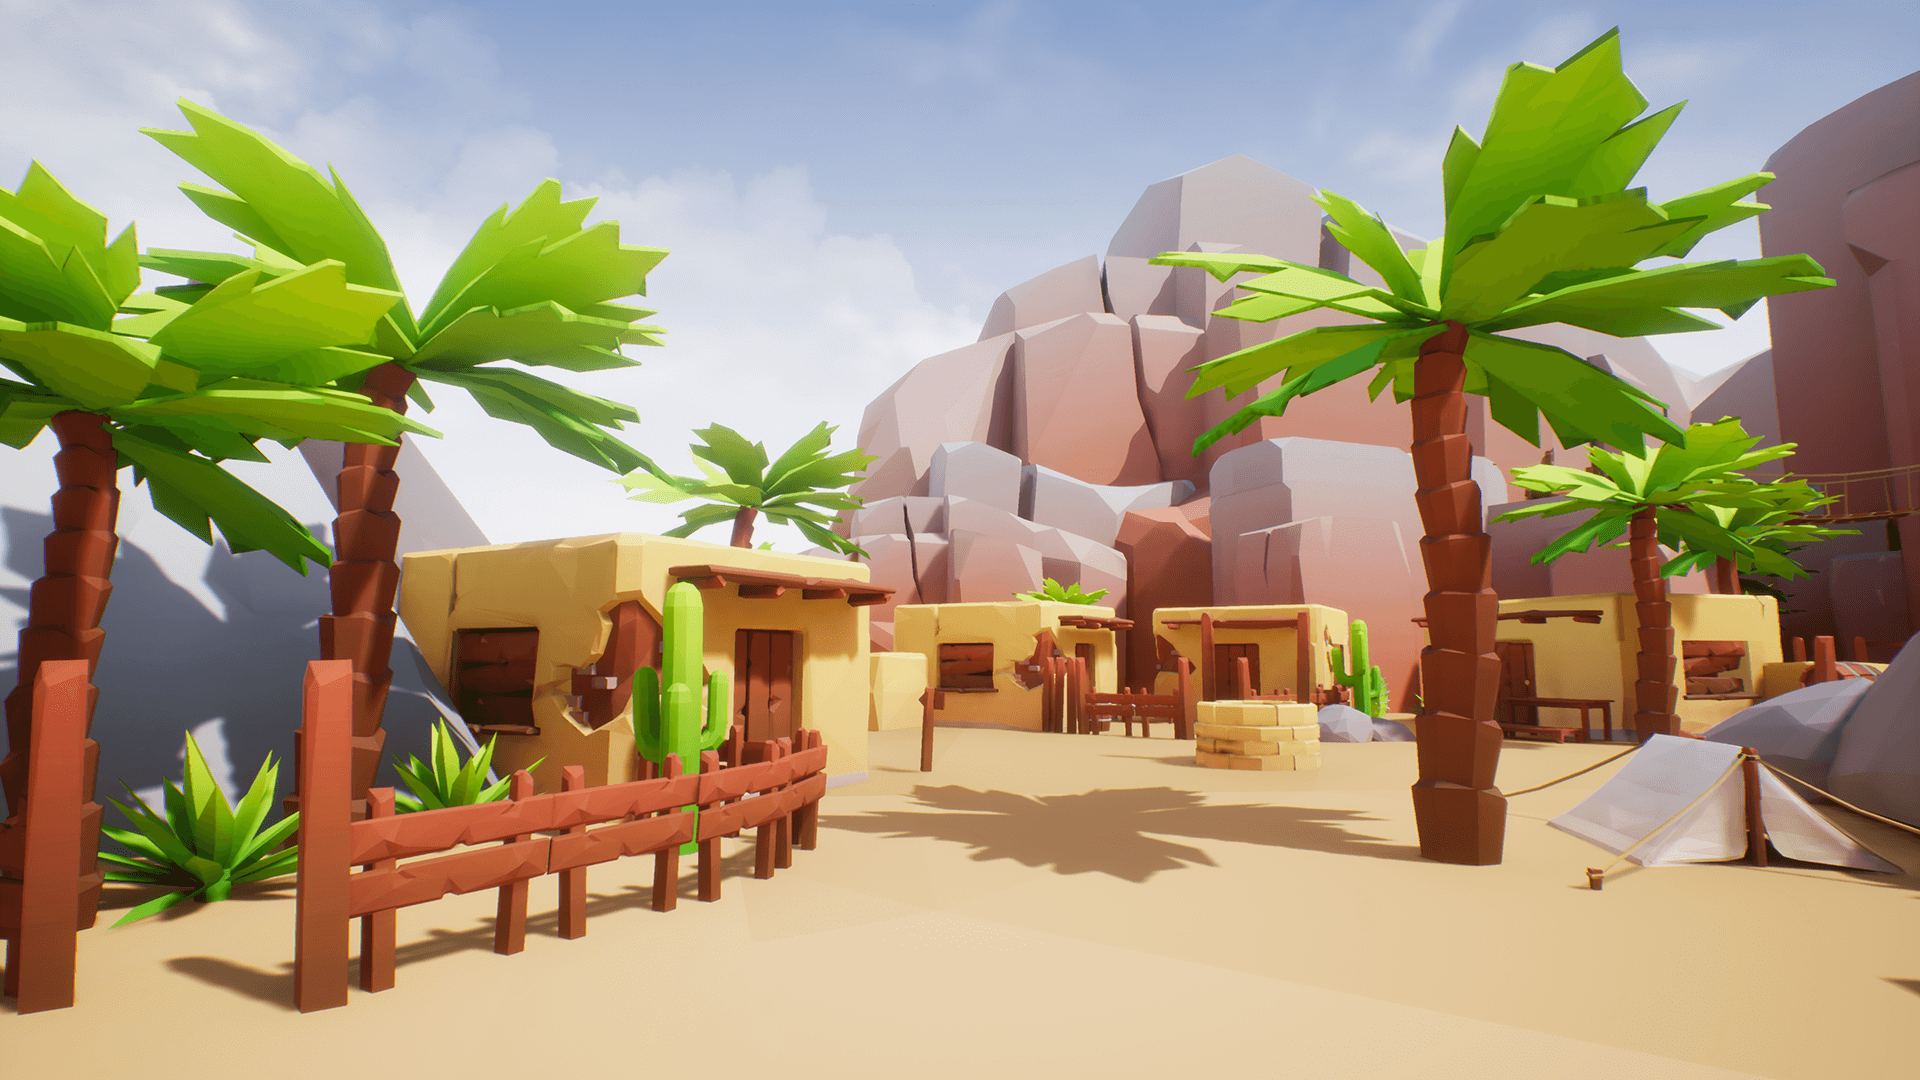 Lowpoly Style Ultra Pack by CH Assets in Environments - UE4